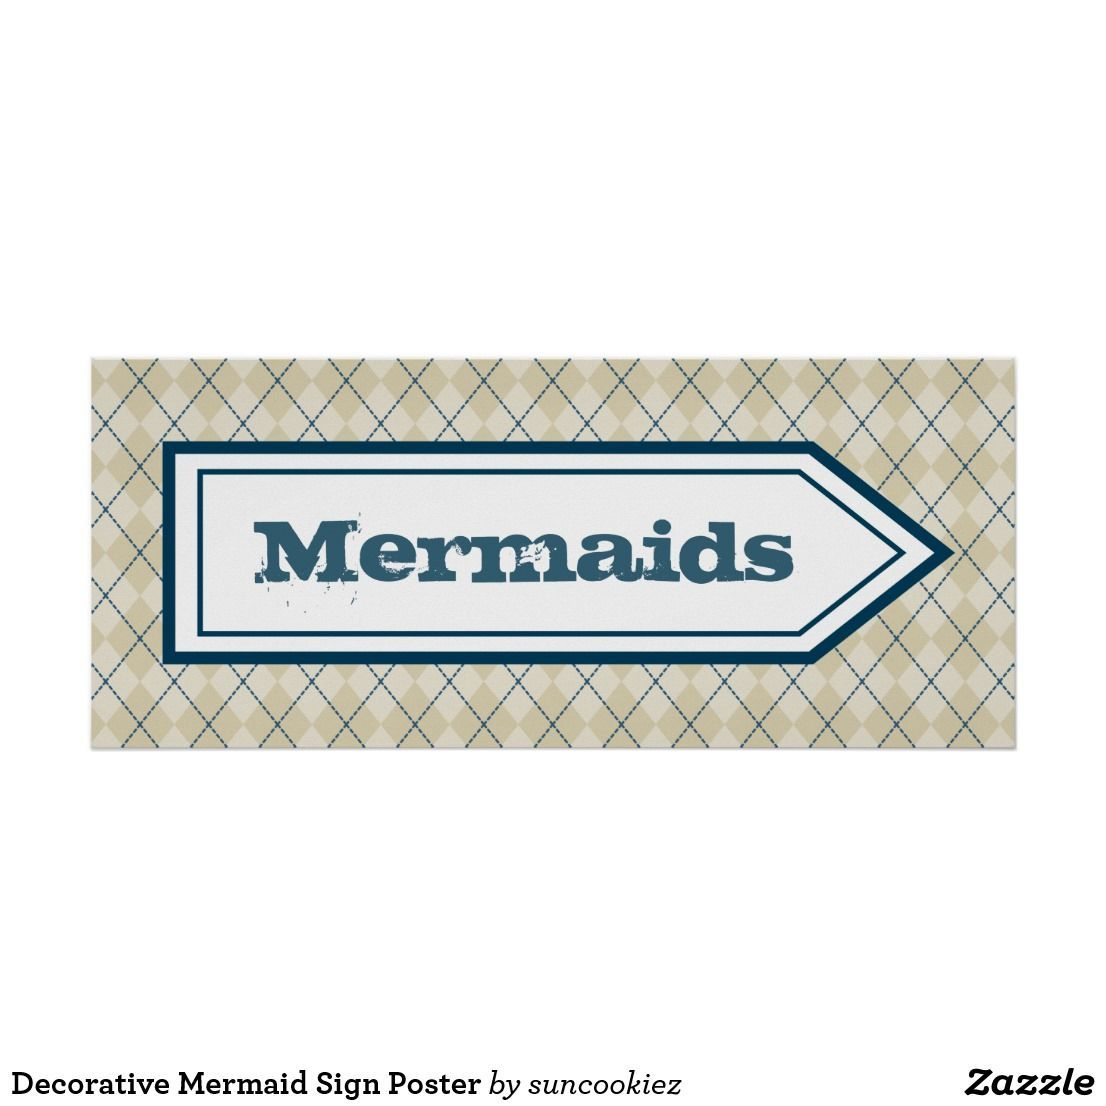 Decorative Mermaid Sign Poster | Zazzle.com #mermaidsign Mermaid Sign, Poster for sale. Use this mermaids sign as decor in a beach house, vacation home, living room, guest room, entryway, etc #mermaid #beachhousedecor #mermaidsign